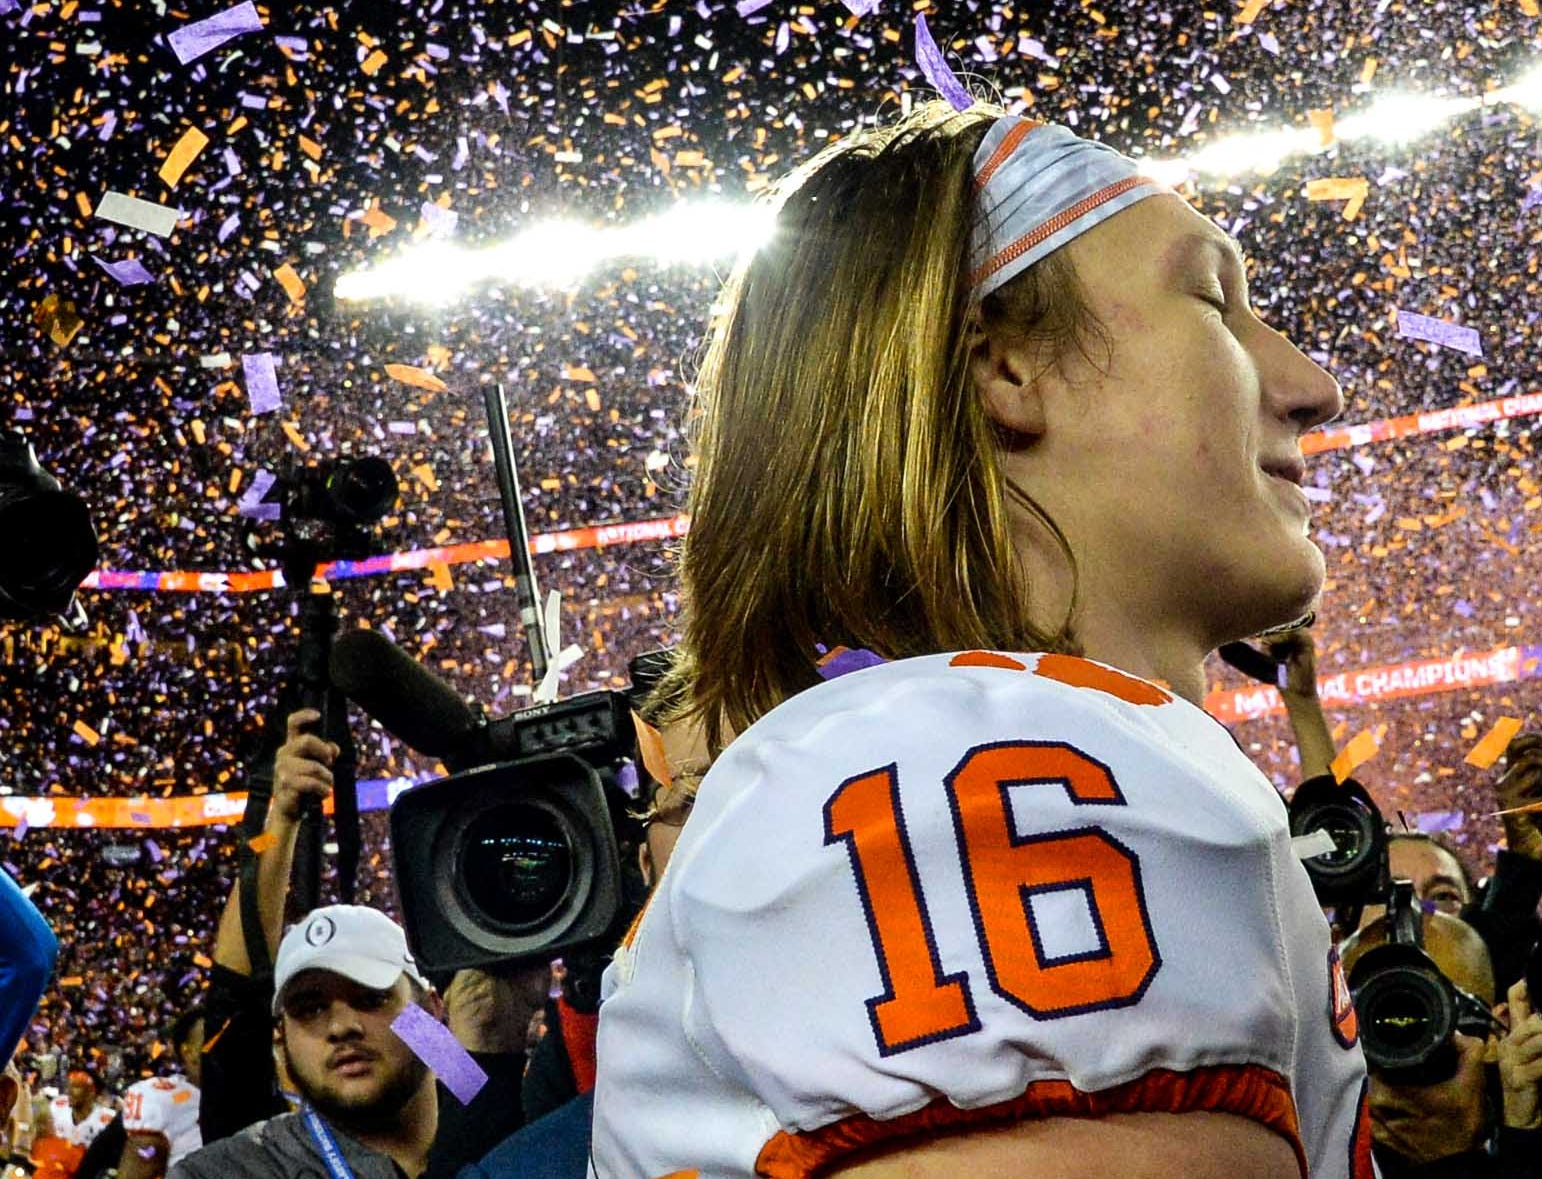 Clemson quarterback Trevor Lawrence (16) celebrates with fans a 44-16 win after the College Football Championship game at Levi's Stadium in Santa Clara, California Monday, January 7, 2019.